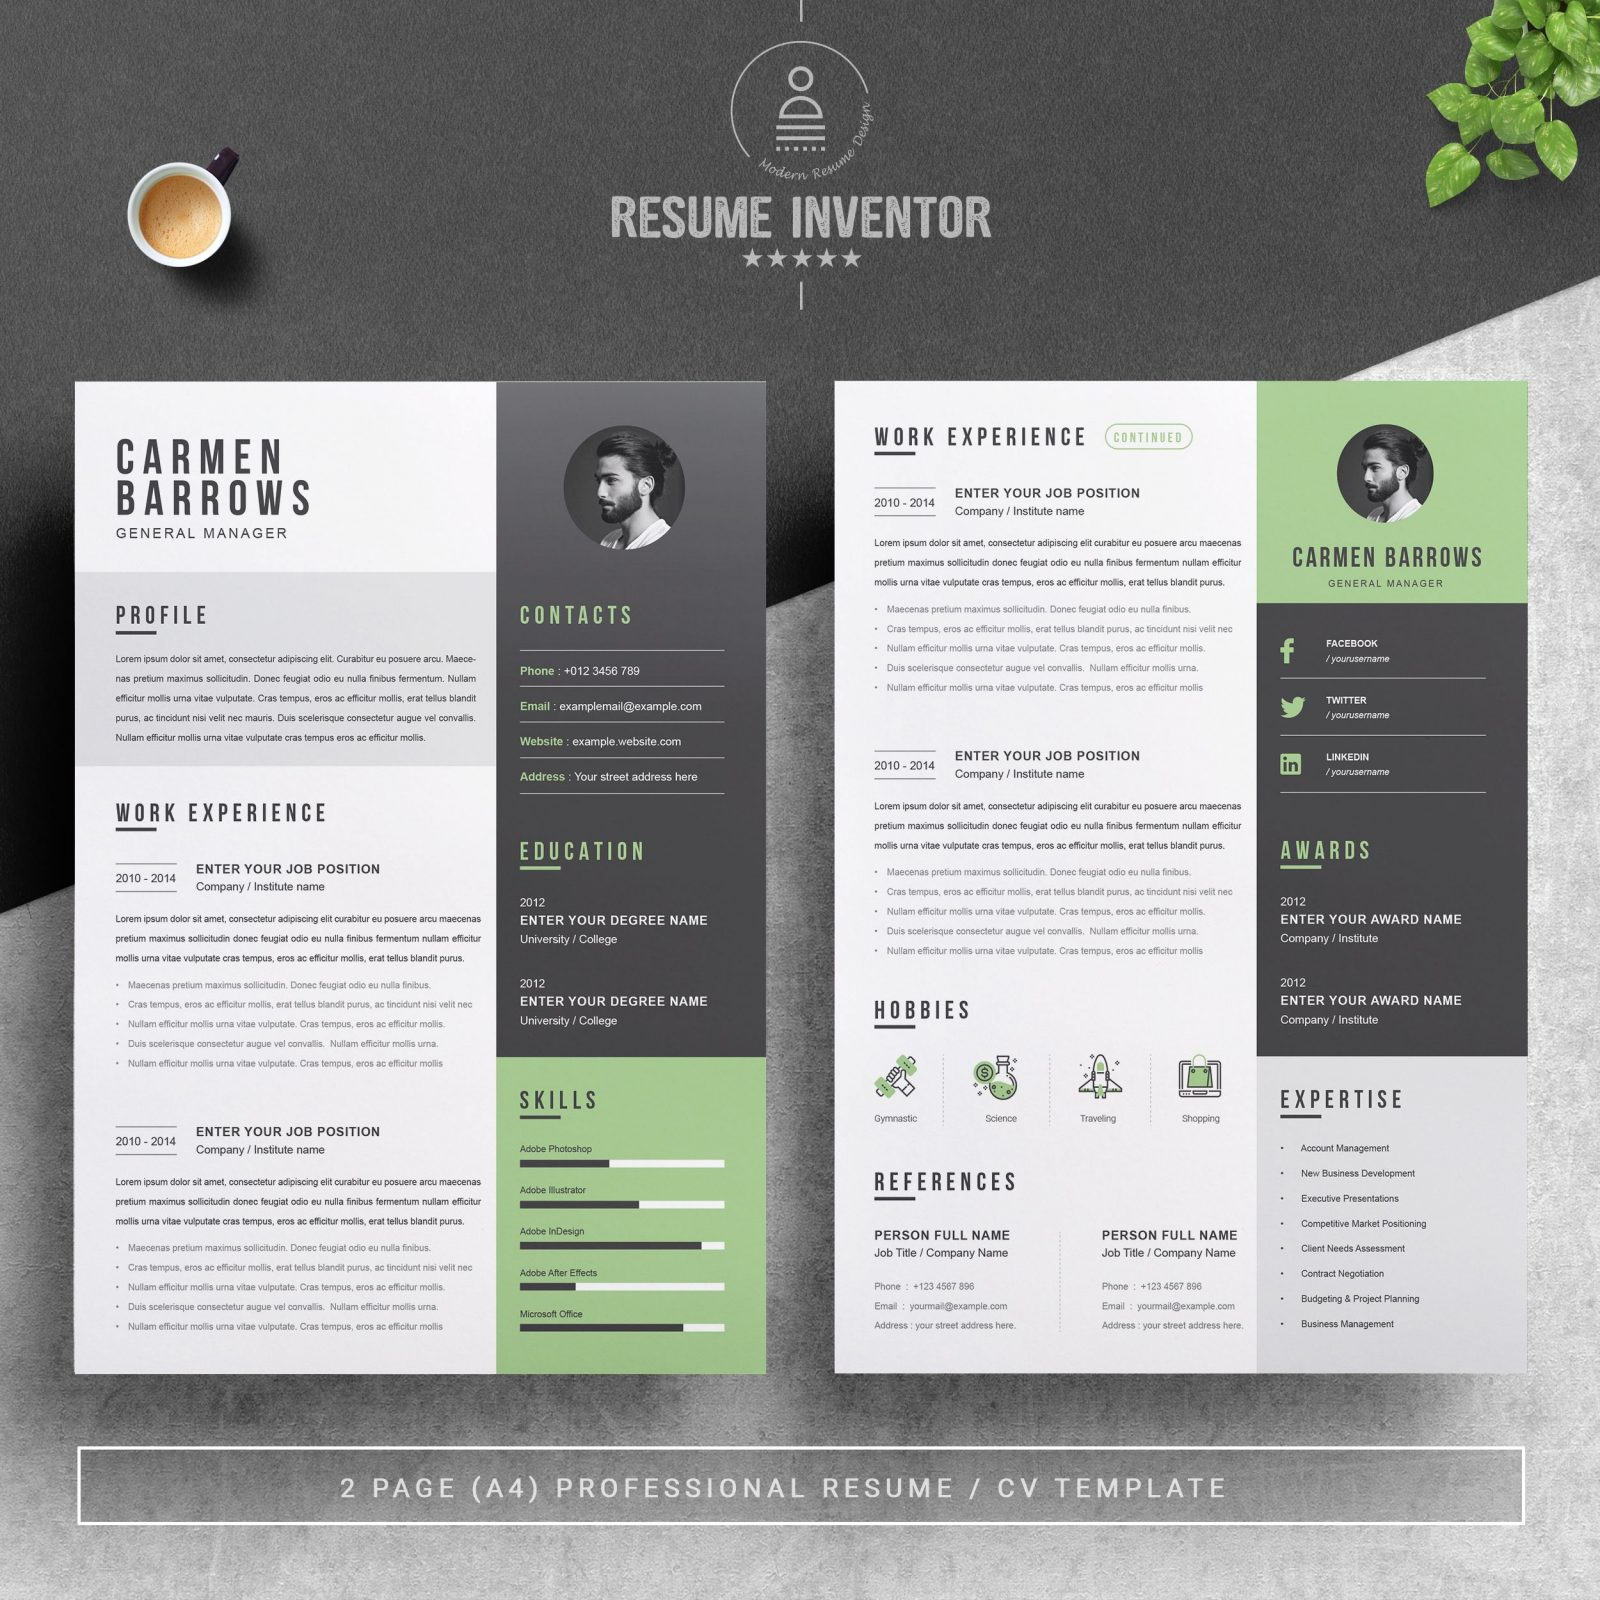 best free resume templates for architects arch2o make and print 1600x1600 office Resume Make And Print Resume For Free